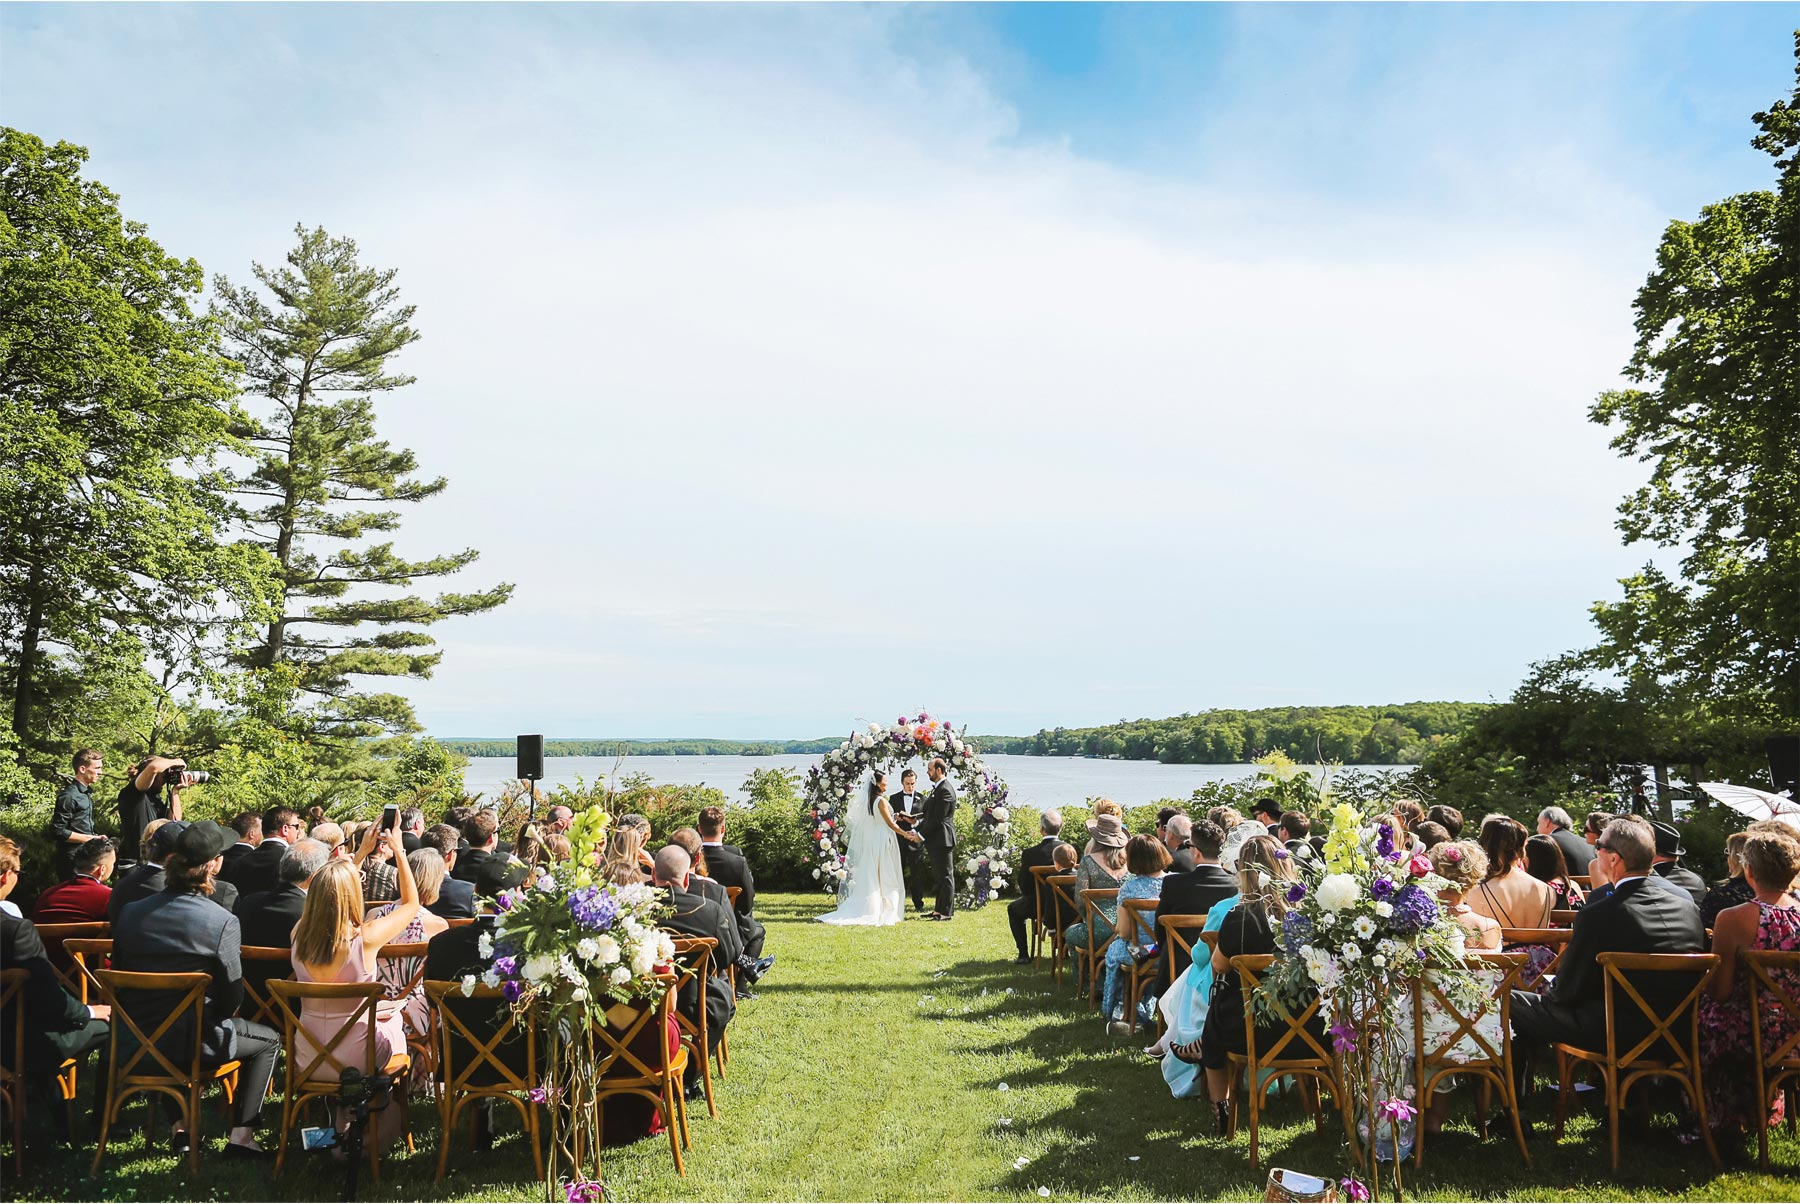 13-Vick-Photography-Wedding-Stouts-Island-Lodge-Wisconsin-Summer-Ceremony-Outdoor-Lake-MiJa-and-Lucius.jpg